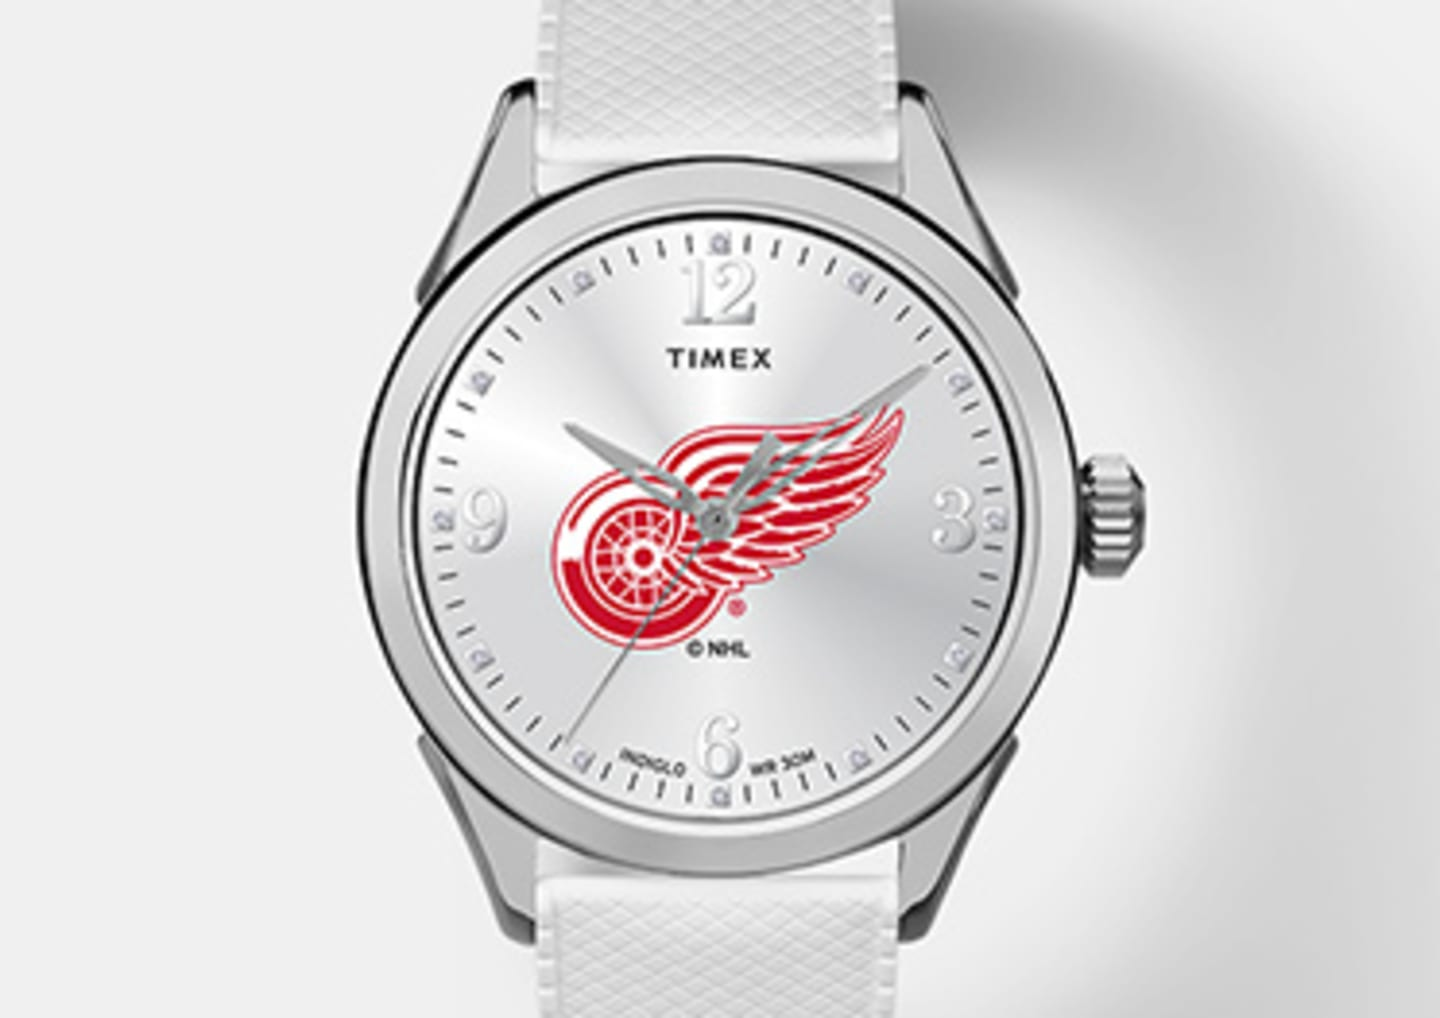 Silver Red Wings watch with logo in the center emphasizing women's watches